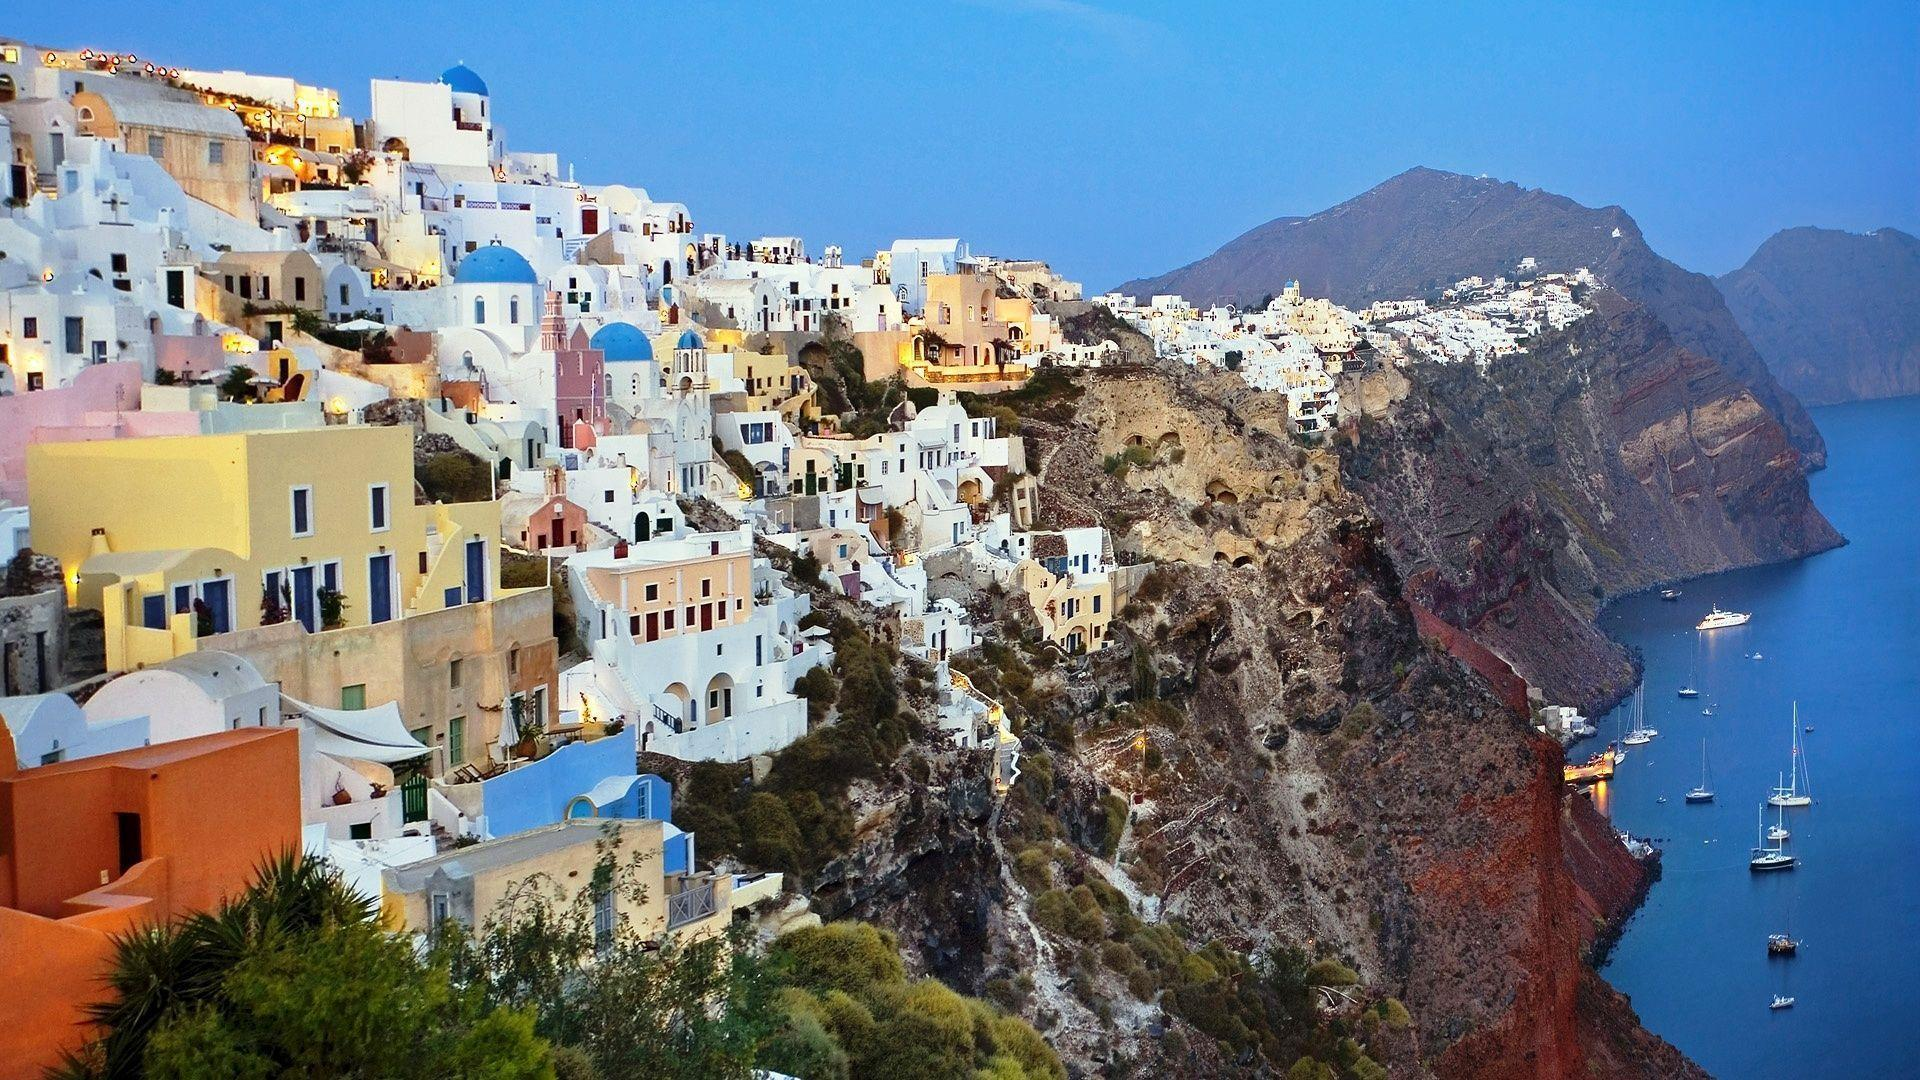 Santorini HD Wallpapers Wallpaper Backgrounds